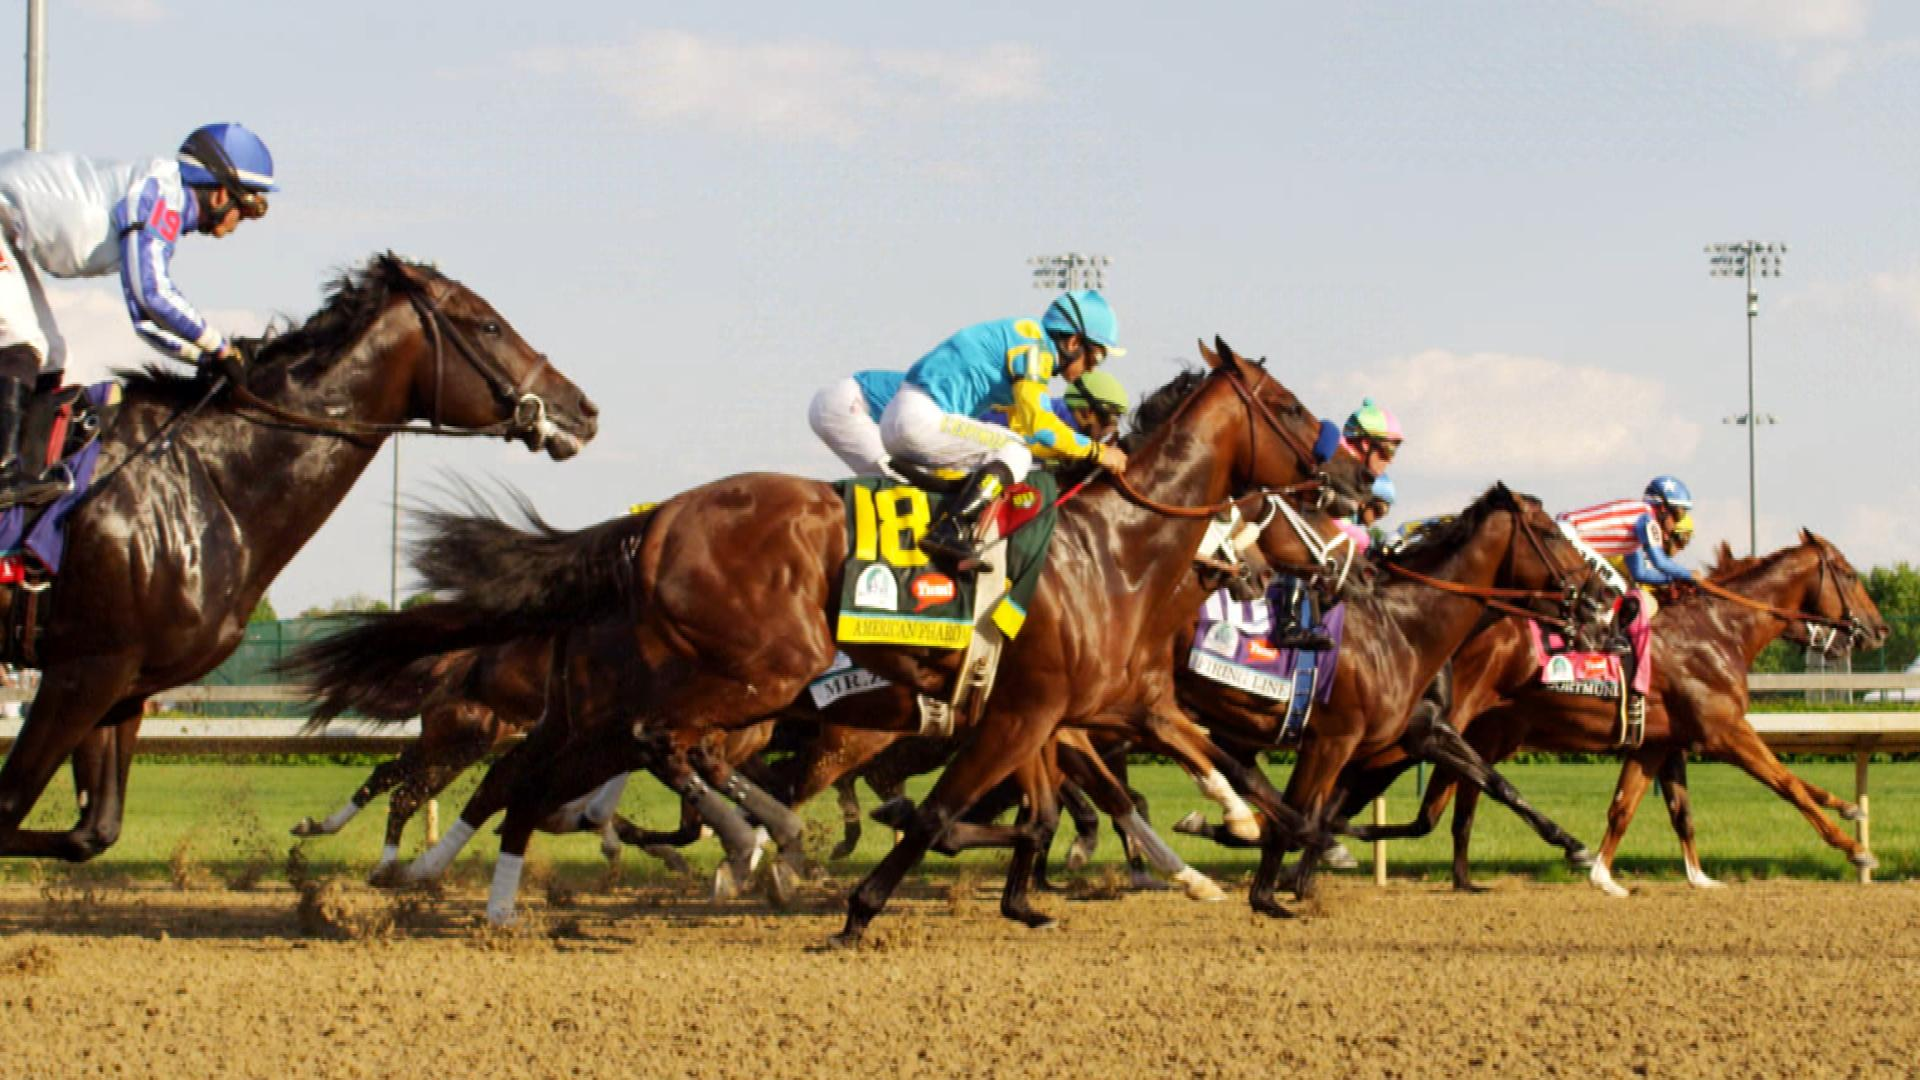 Kentucky Derby Festival - Recommendations for Activities from MangoRV